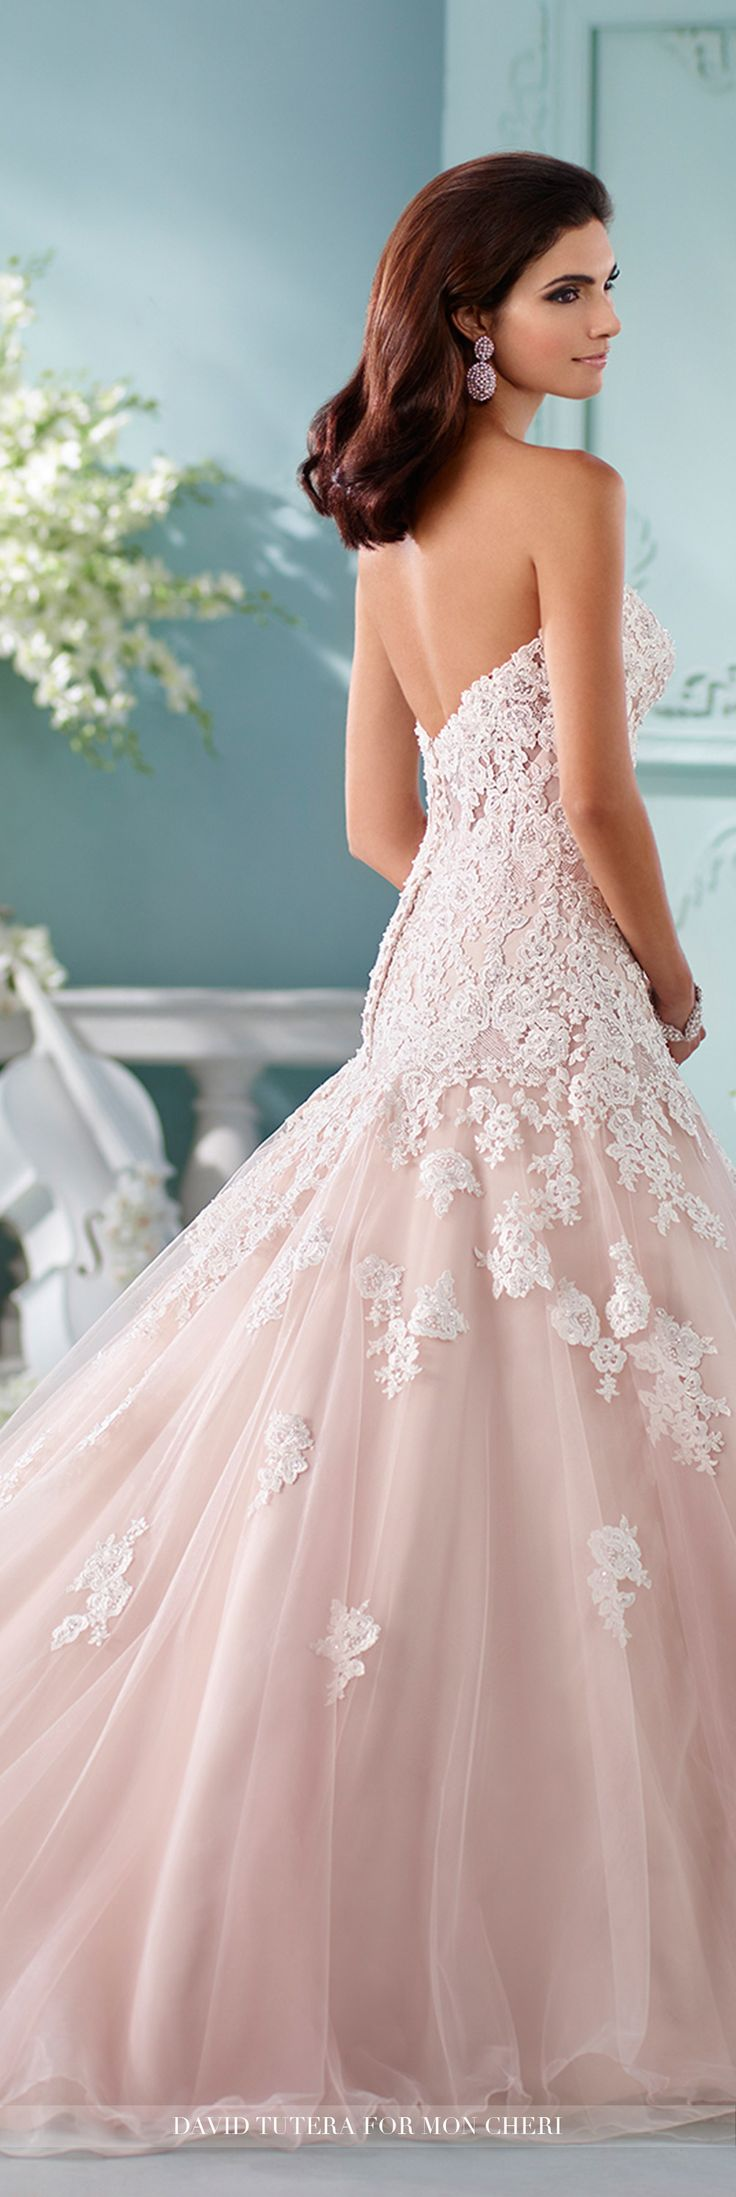 Images Of Blush Wedding Dresses : Ideas about blush wedding dresses on gown